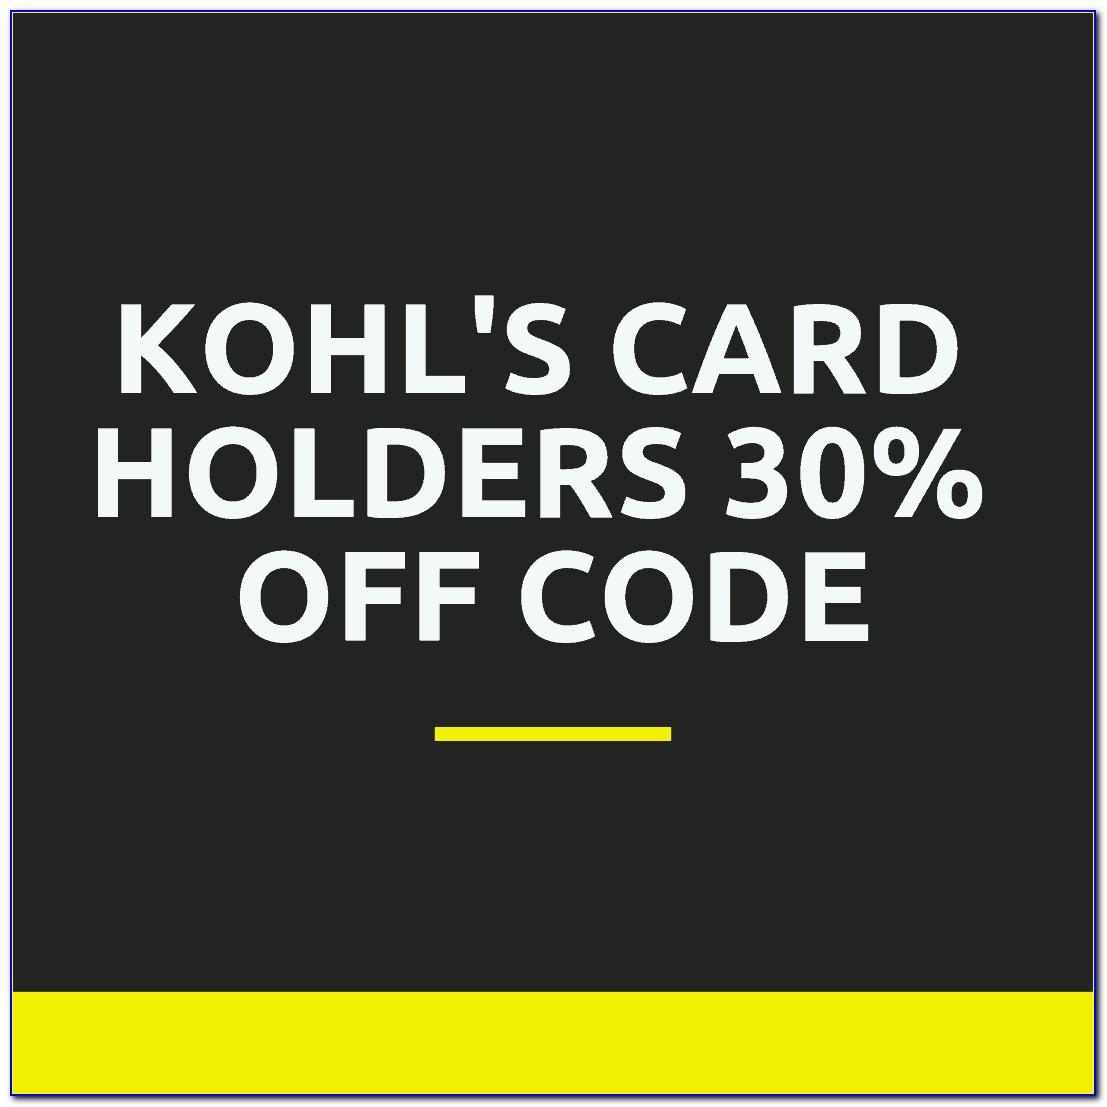 Does Kohls Have Free Shipping For Card Holders